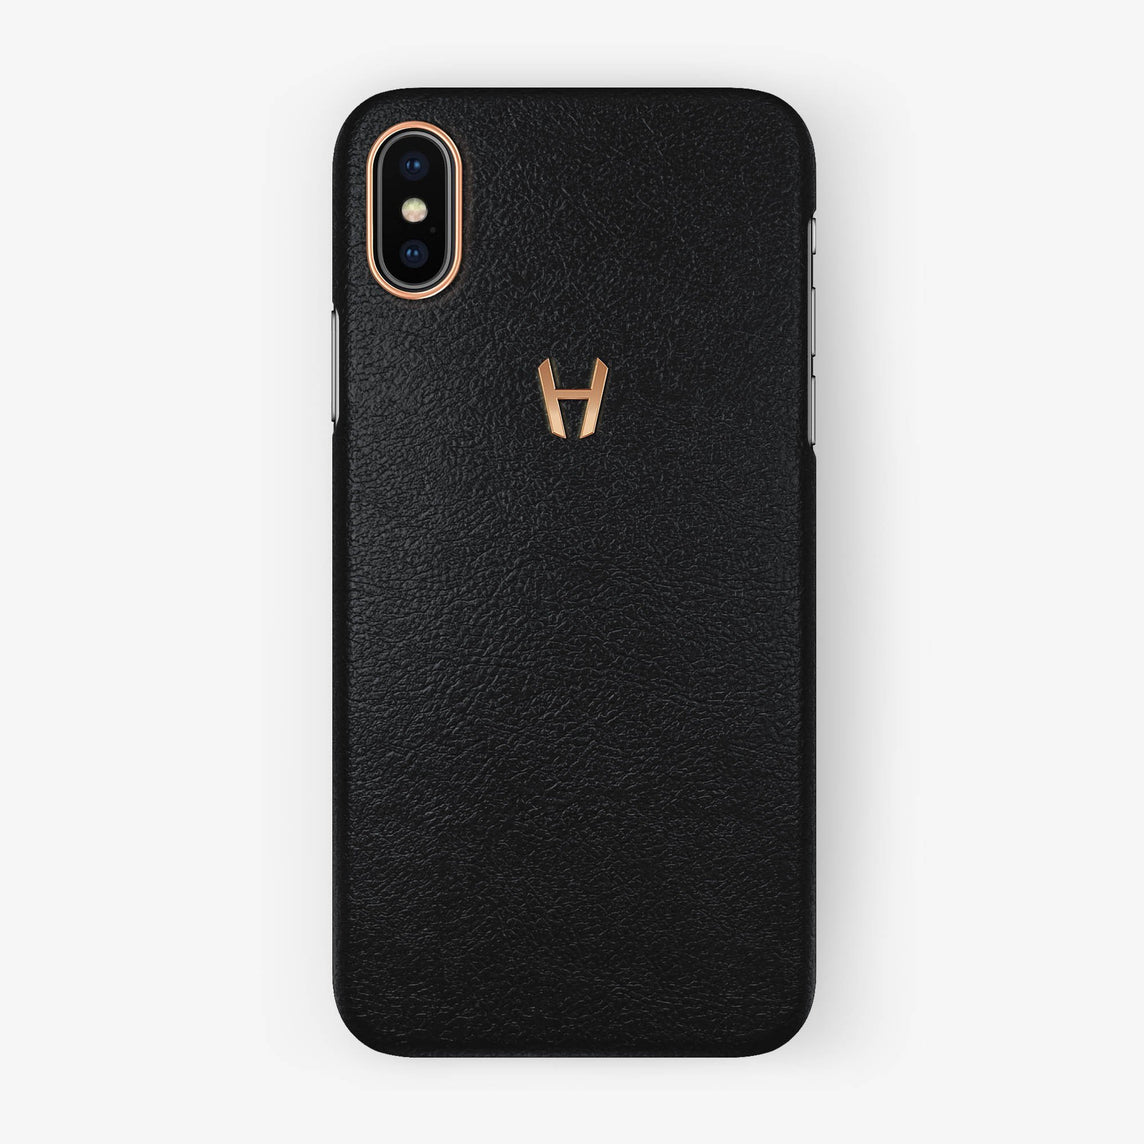 Black Calfskin iPhone Case for iPhone X finishing rose gold - Hadoro Luxury Cases